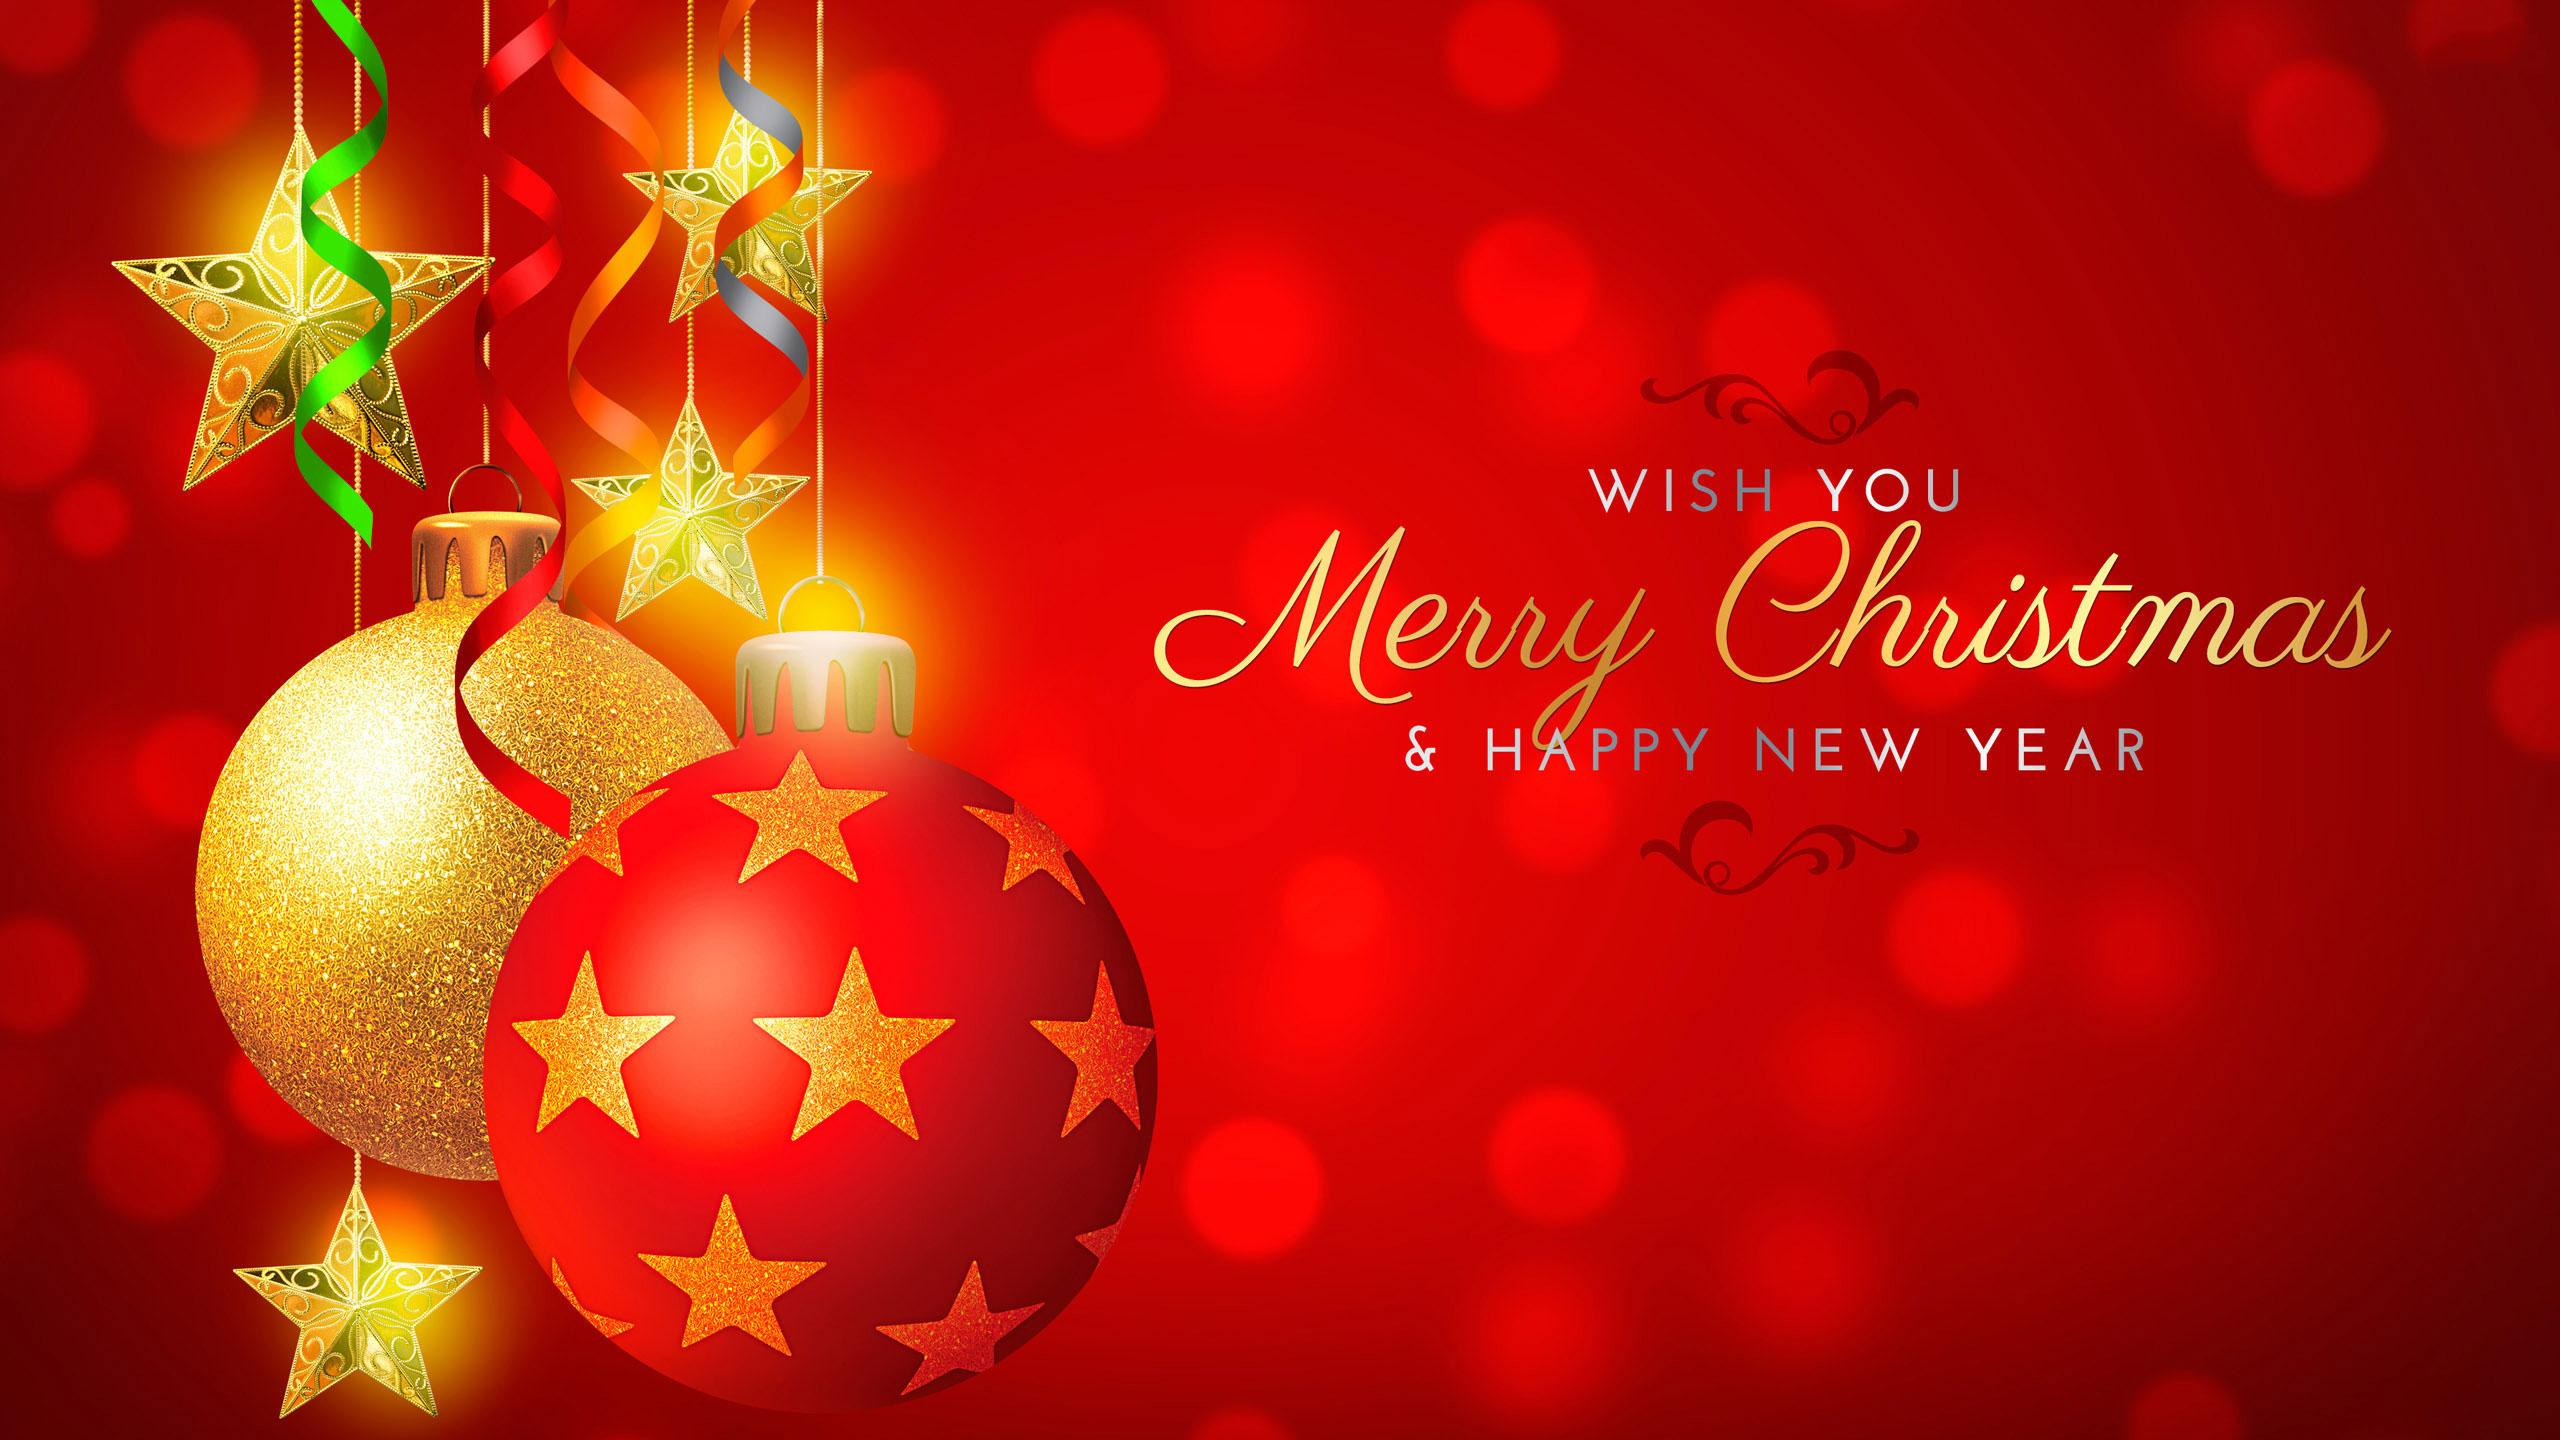 Wish You Merry Christmas and Happy New Year HD Wallpaper 2560x1440